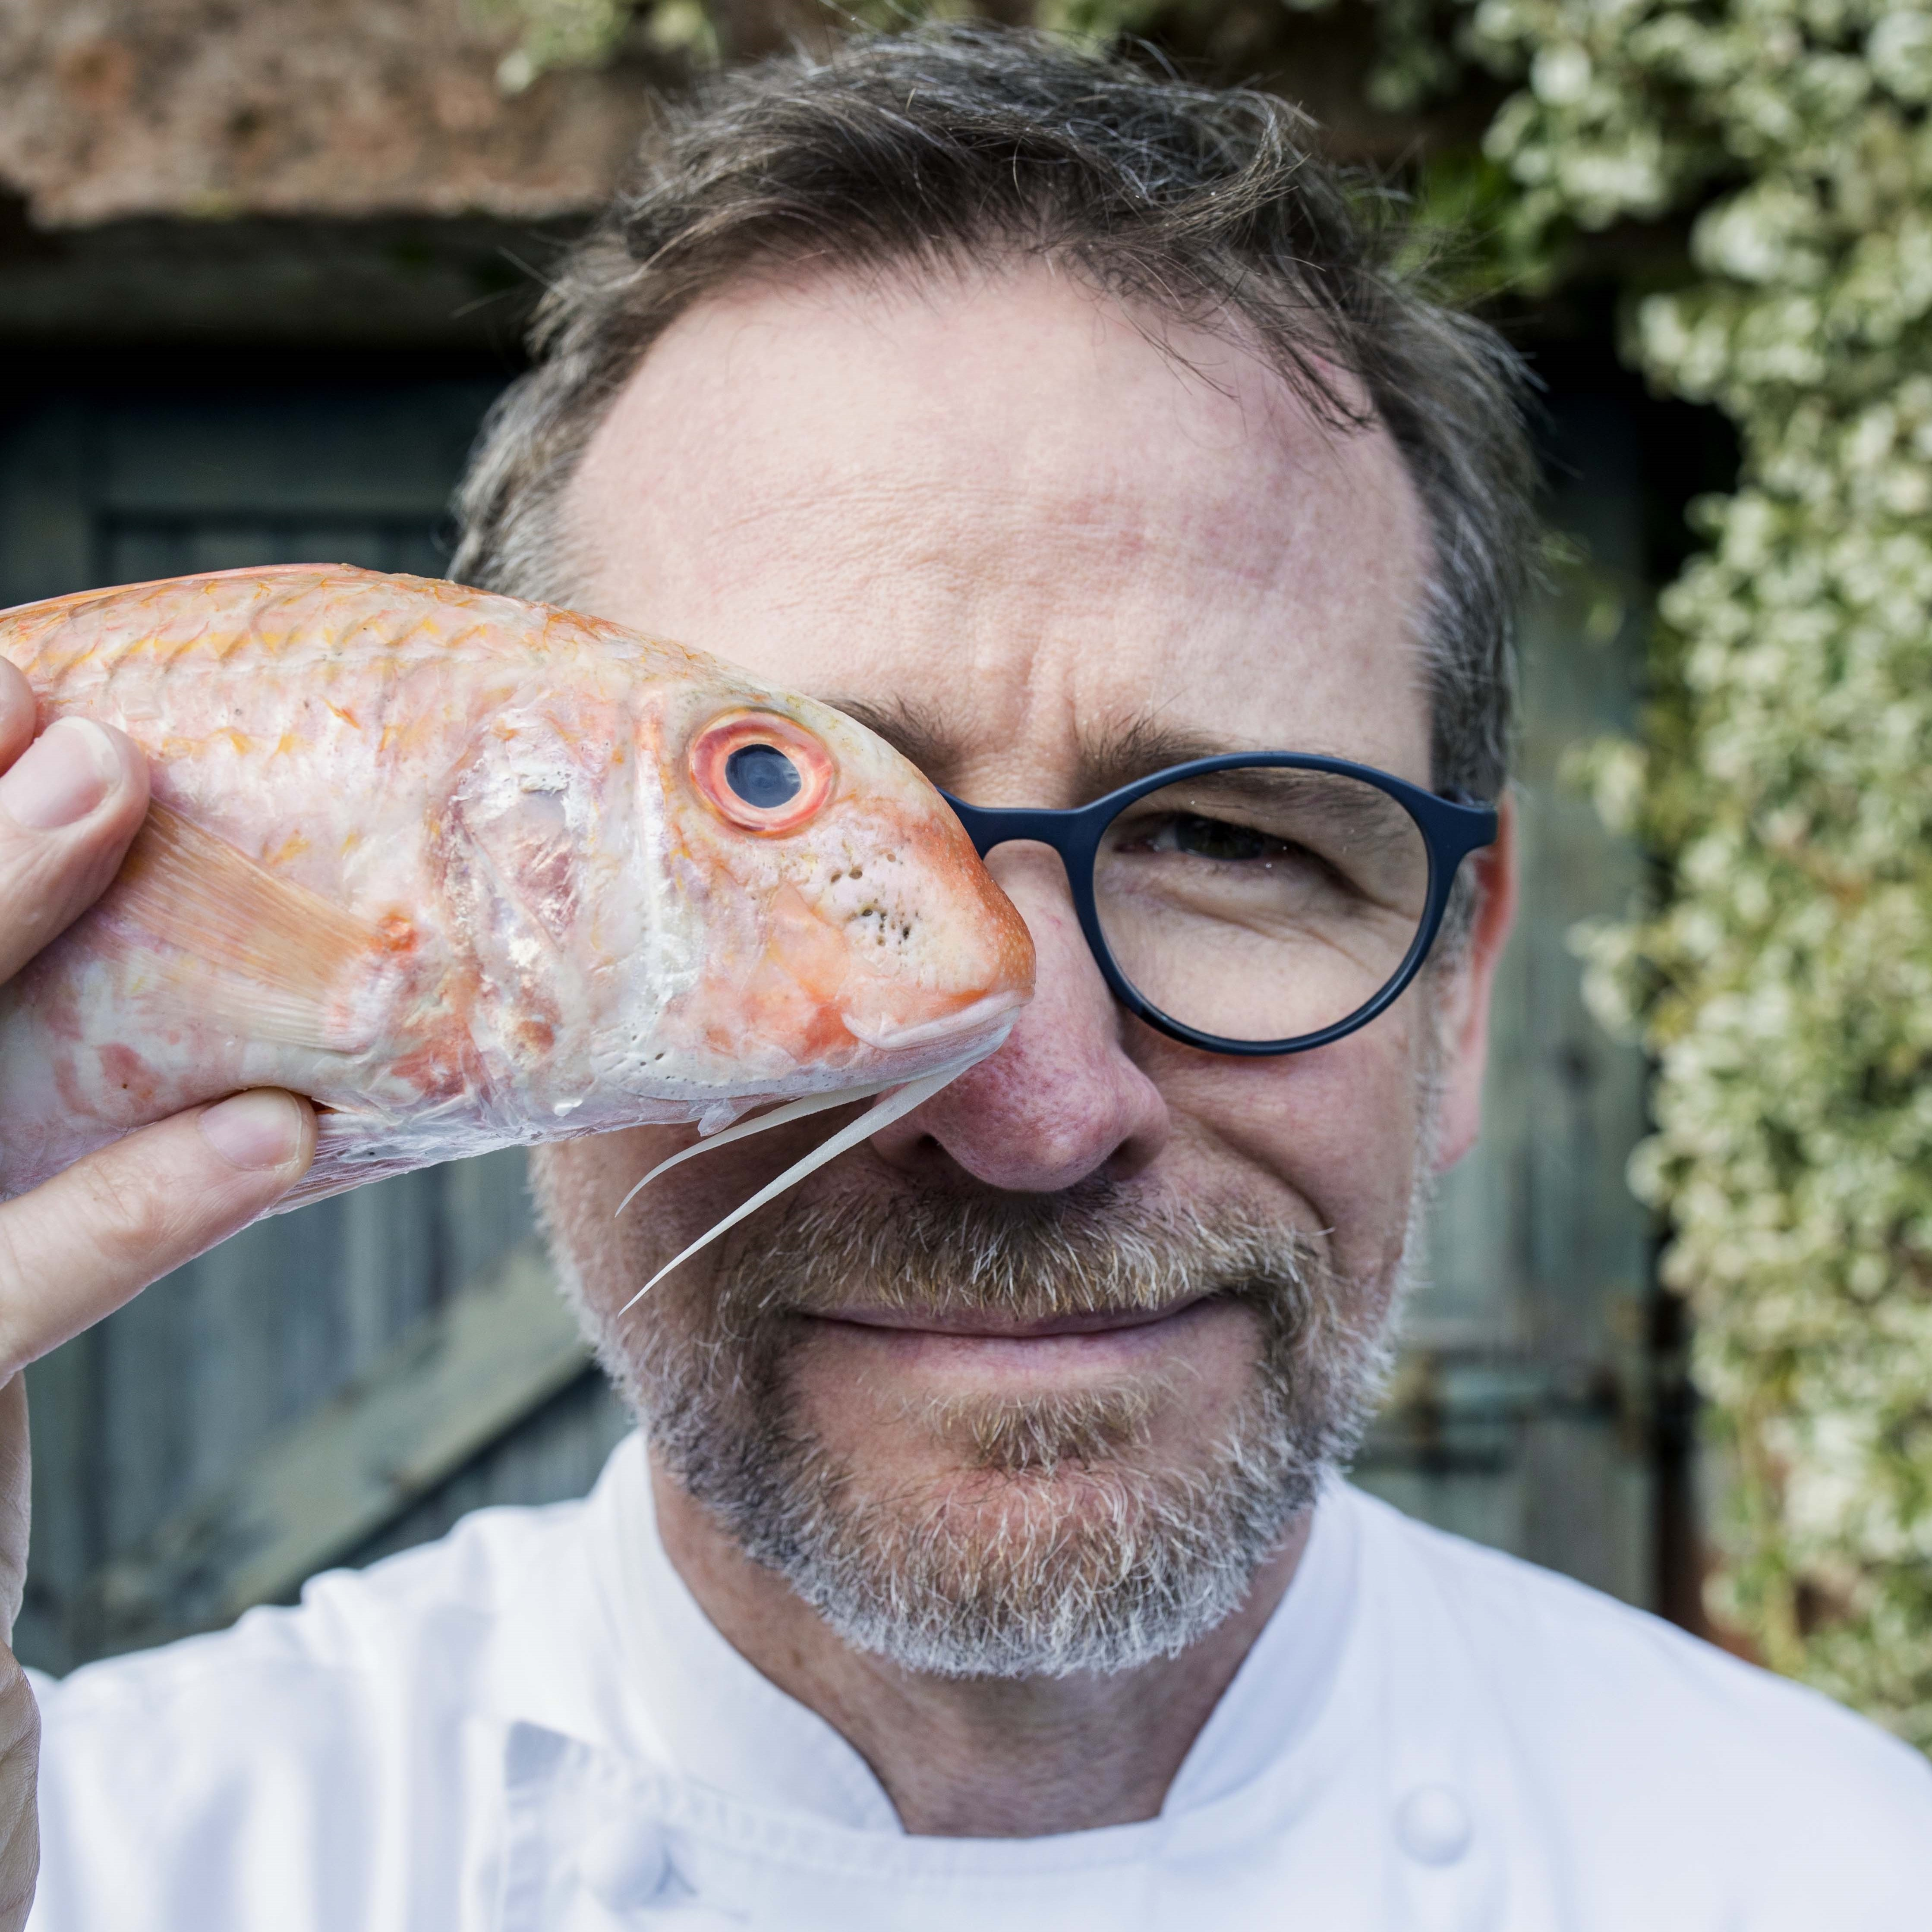 Chef_Fairlie_fish_individuality